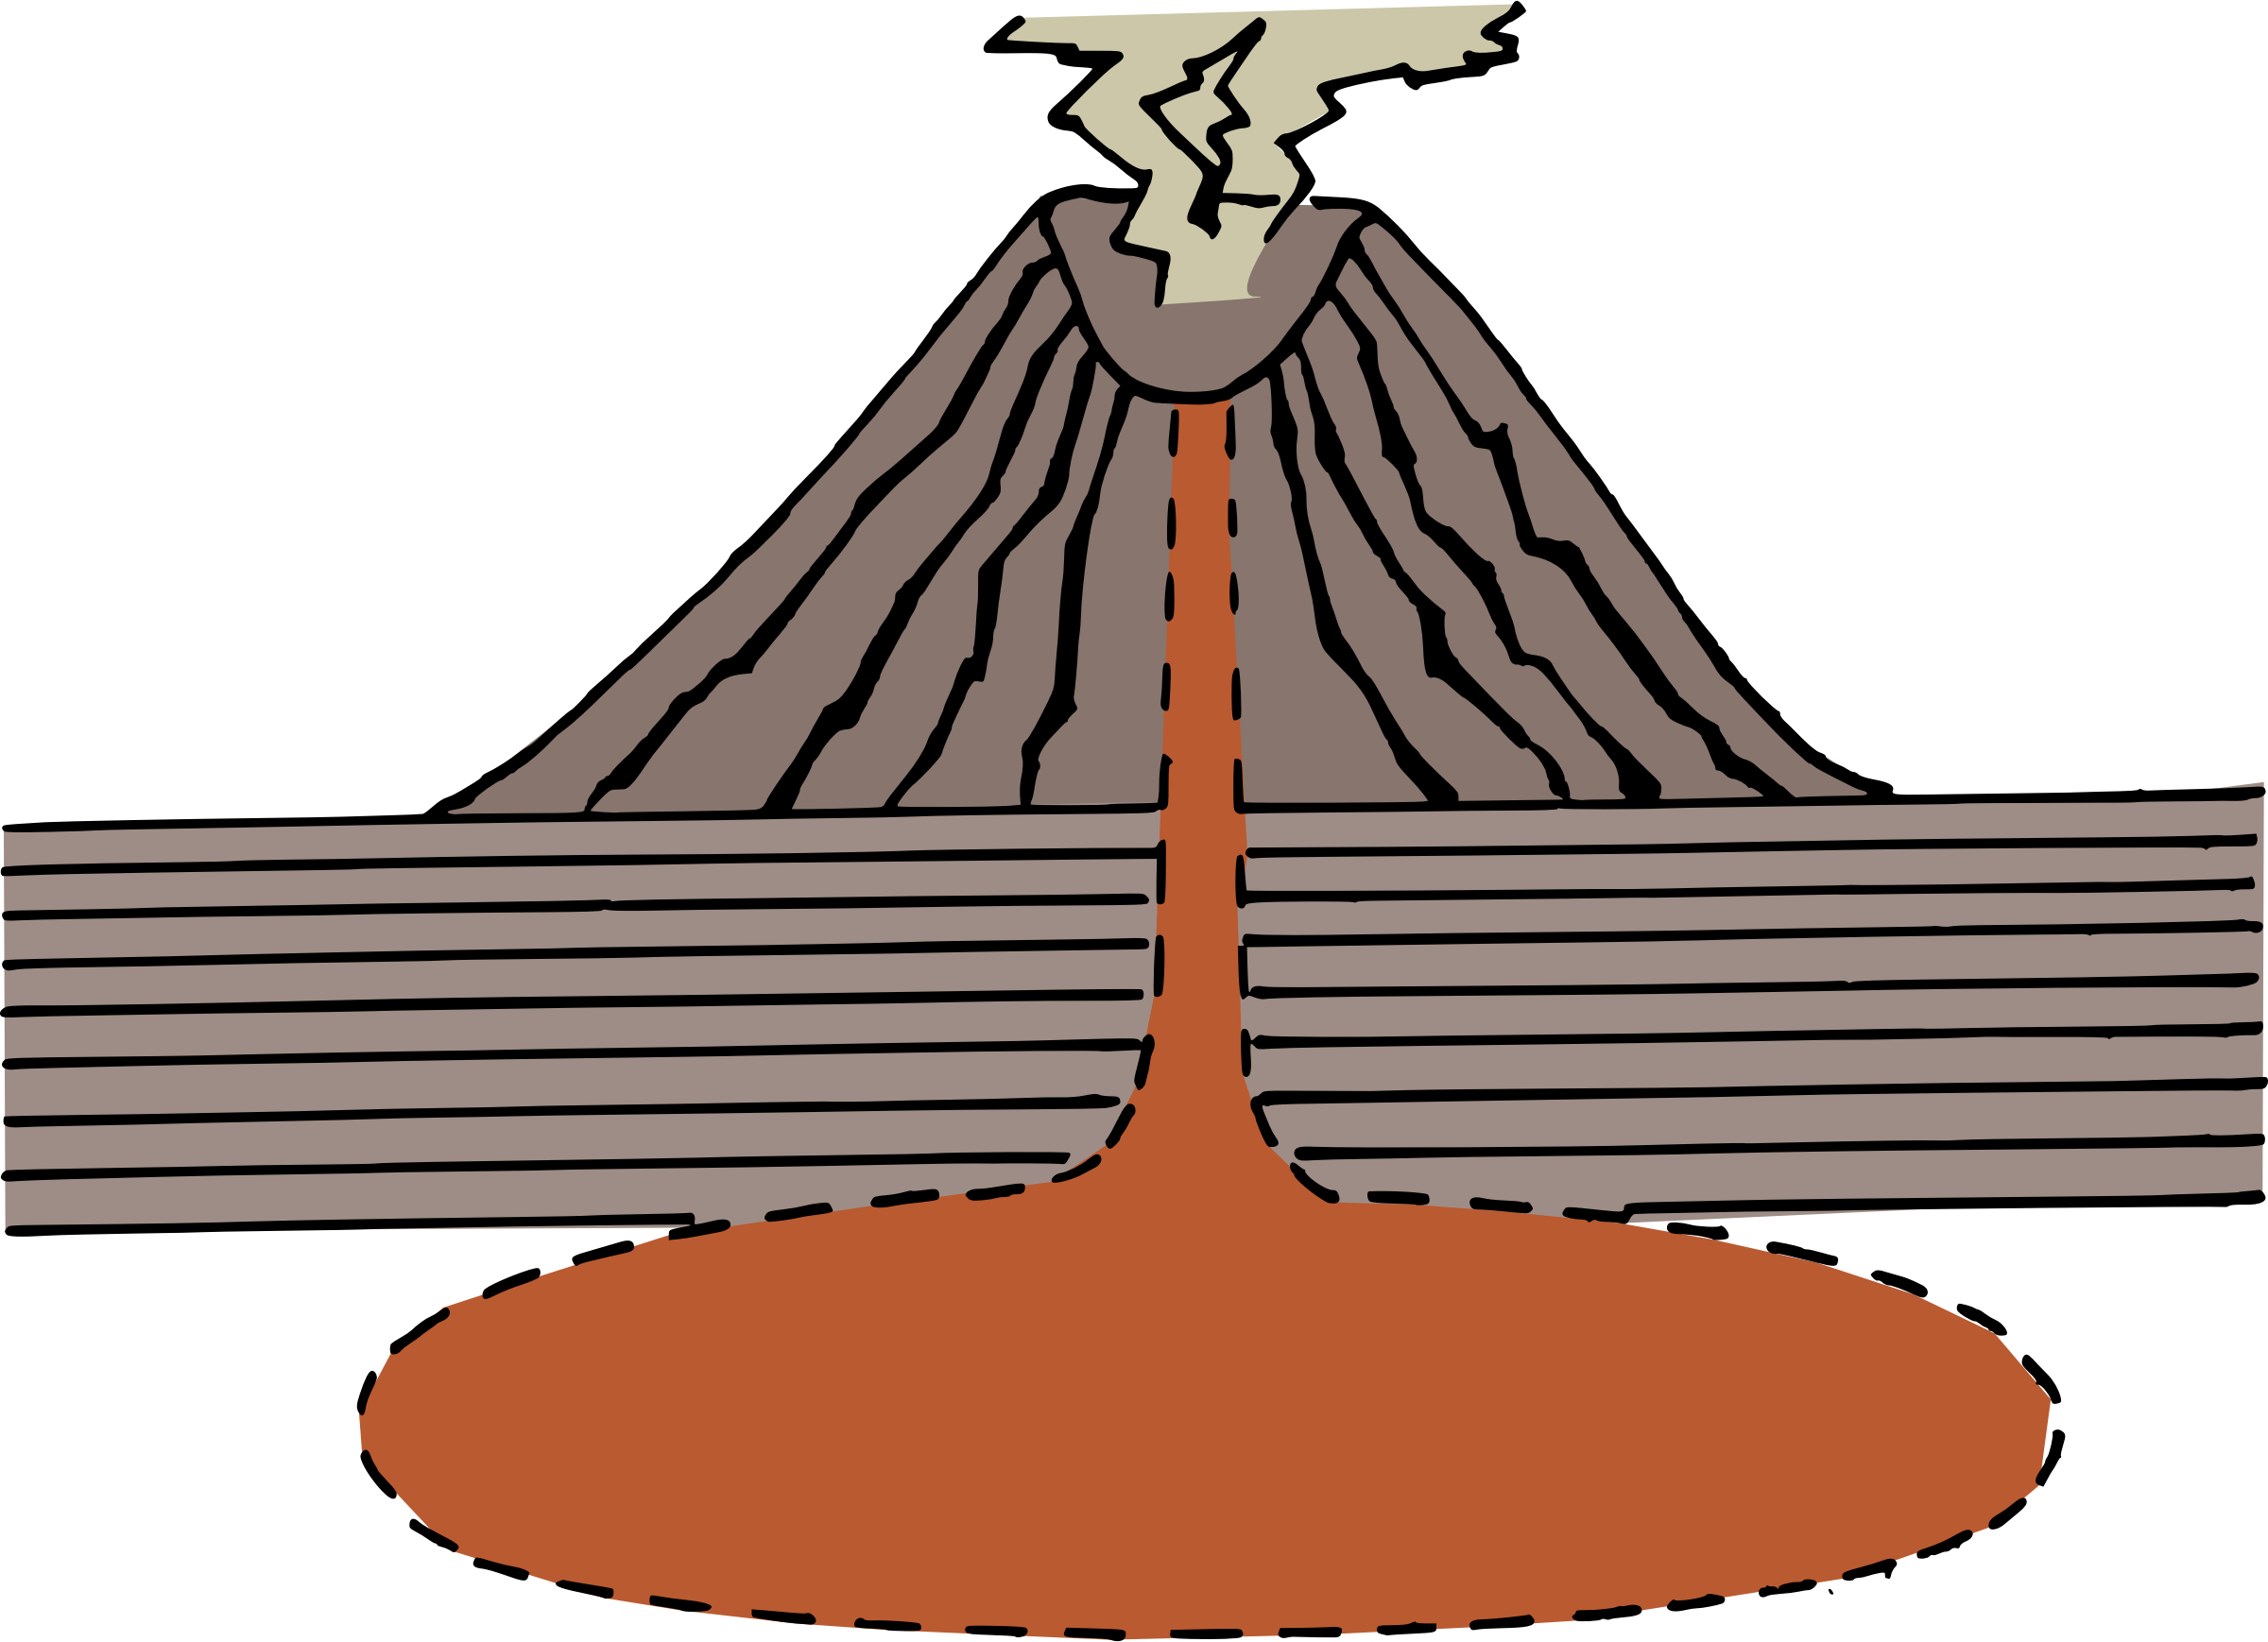 Diagram big image png. Clipart mountain volcano